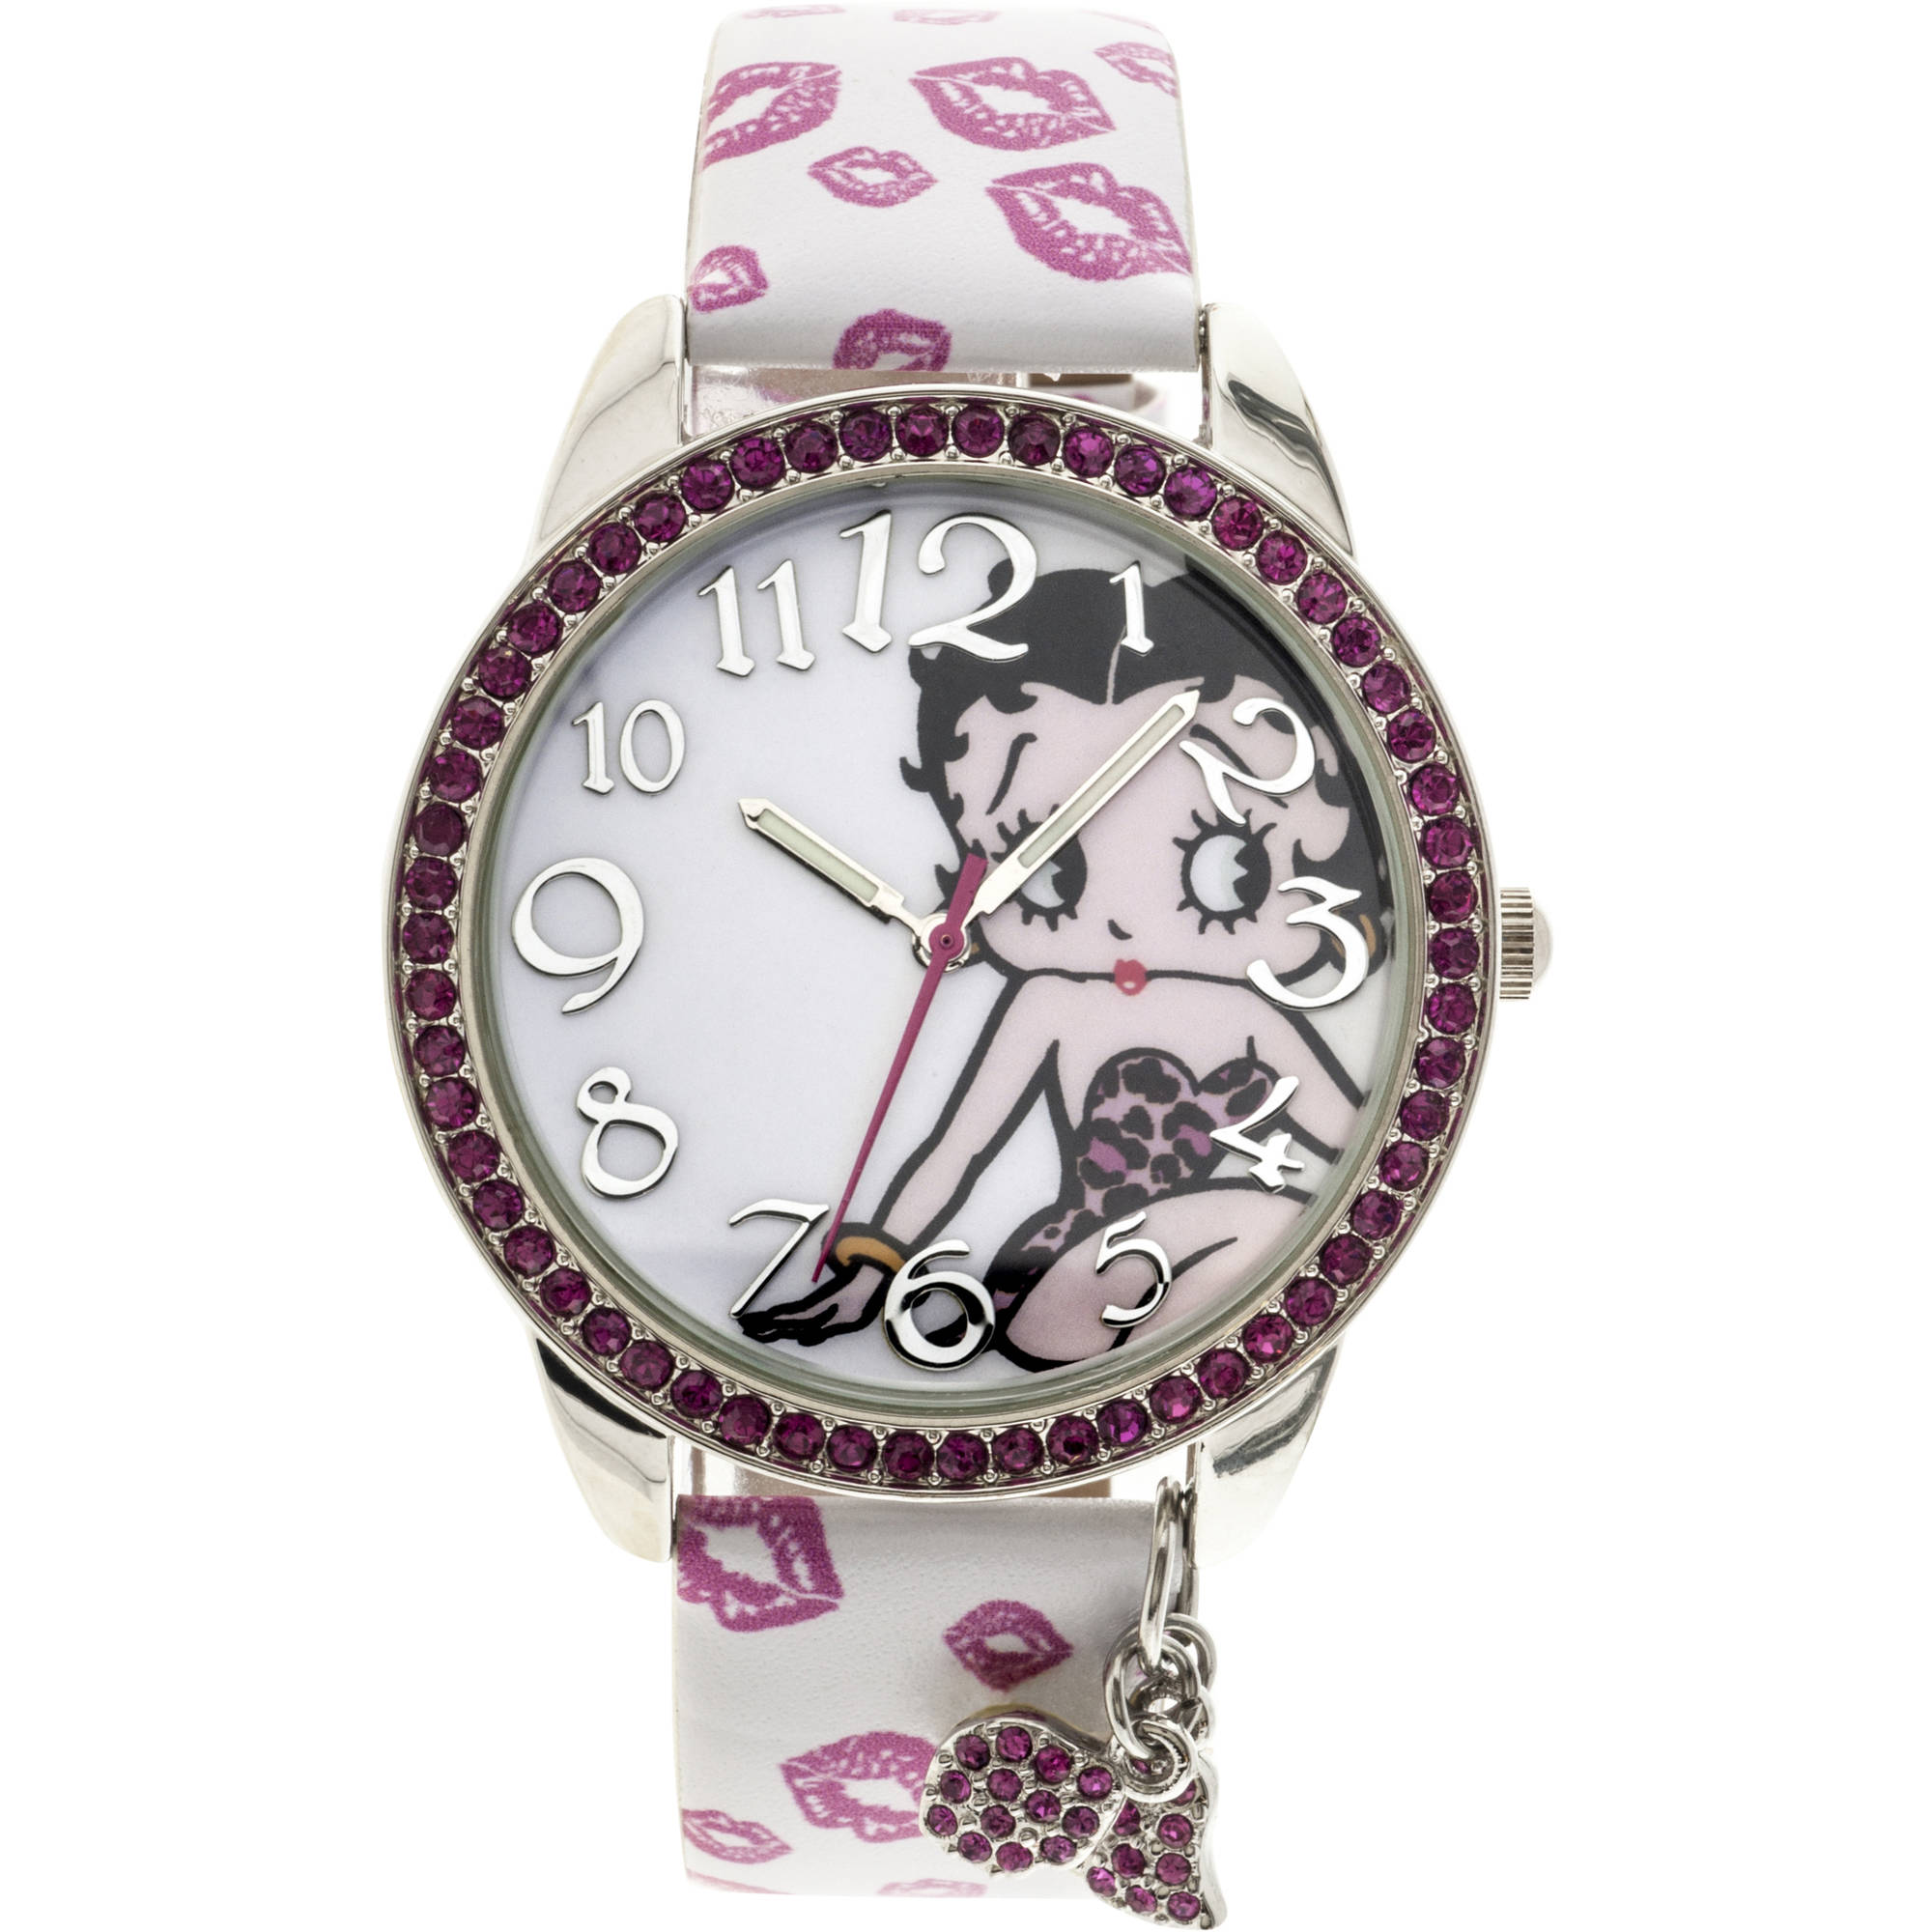 Betty Boop Pink Stone Case with Dangling Charms Character-Printed Dial Analog Watch, White Strap with Pink Lips